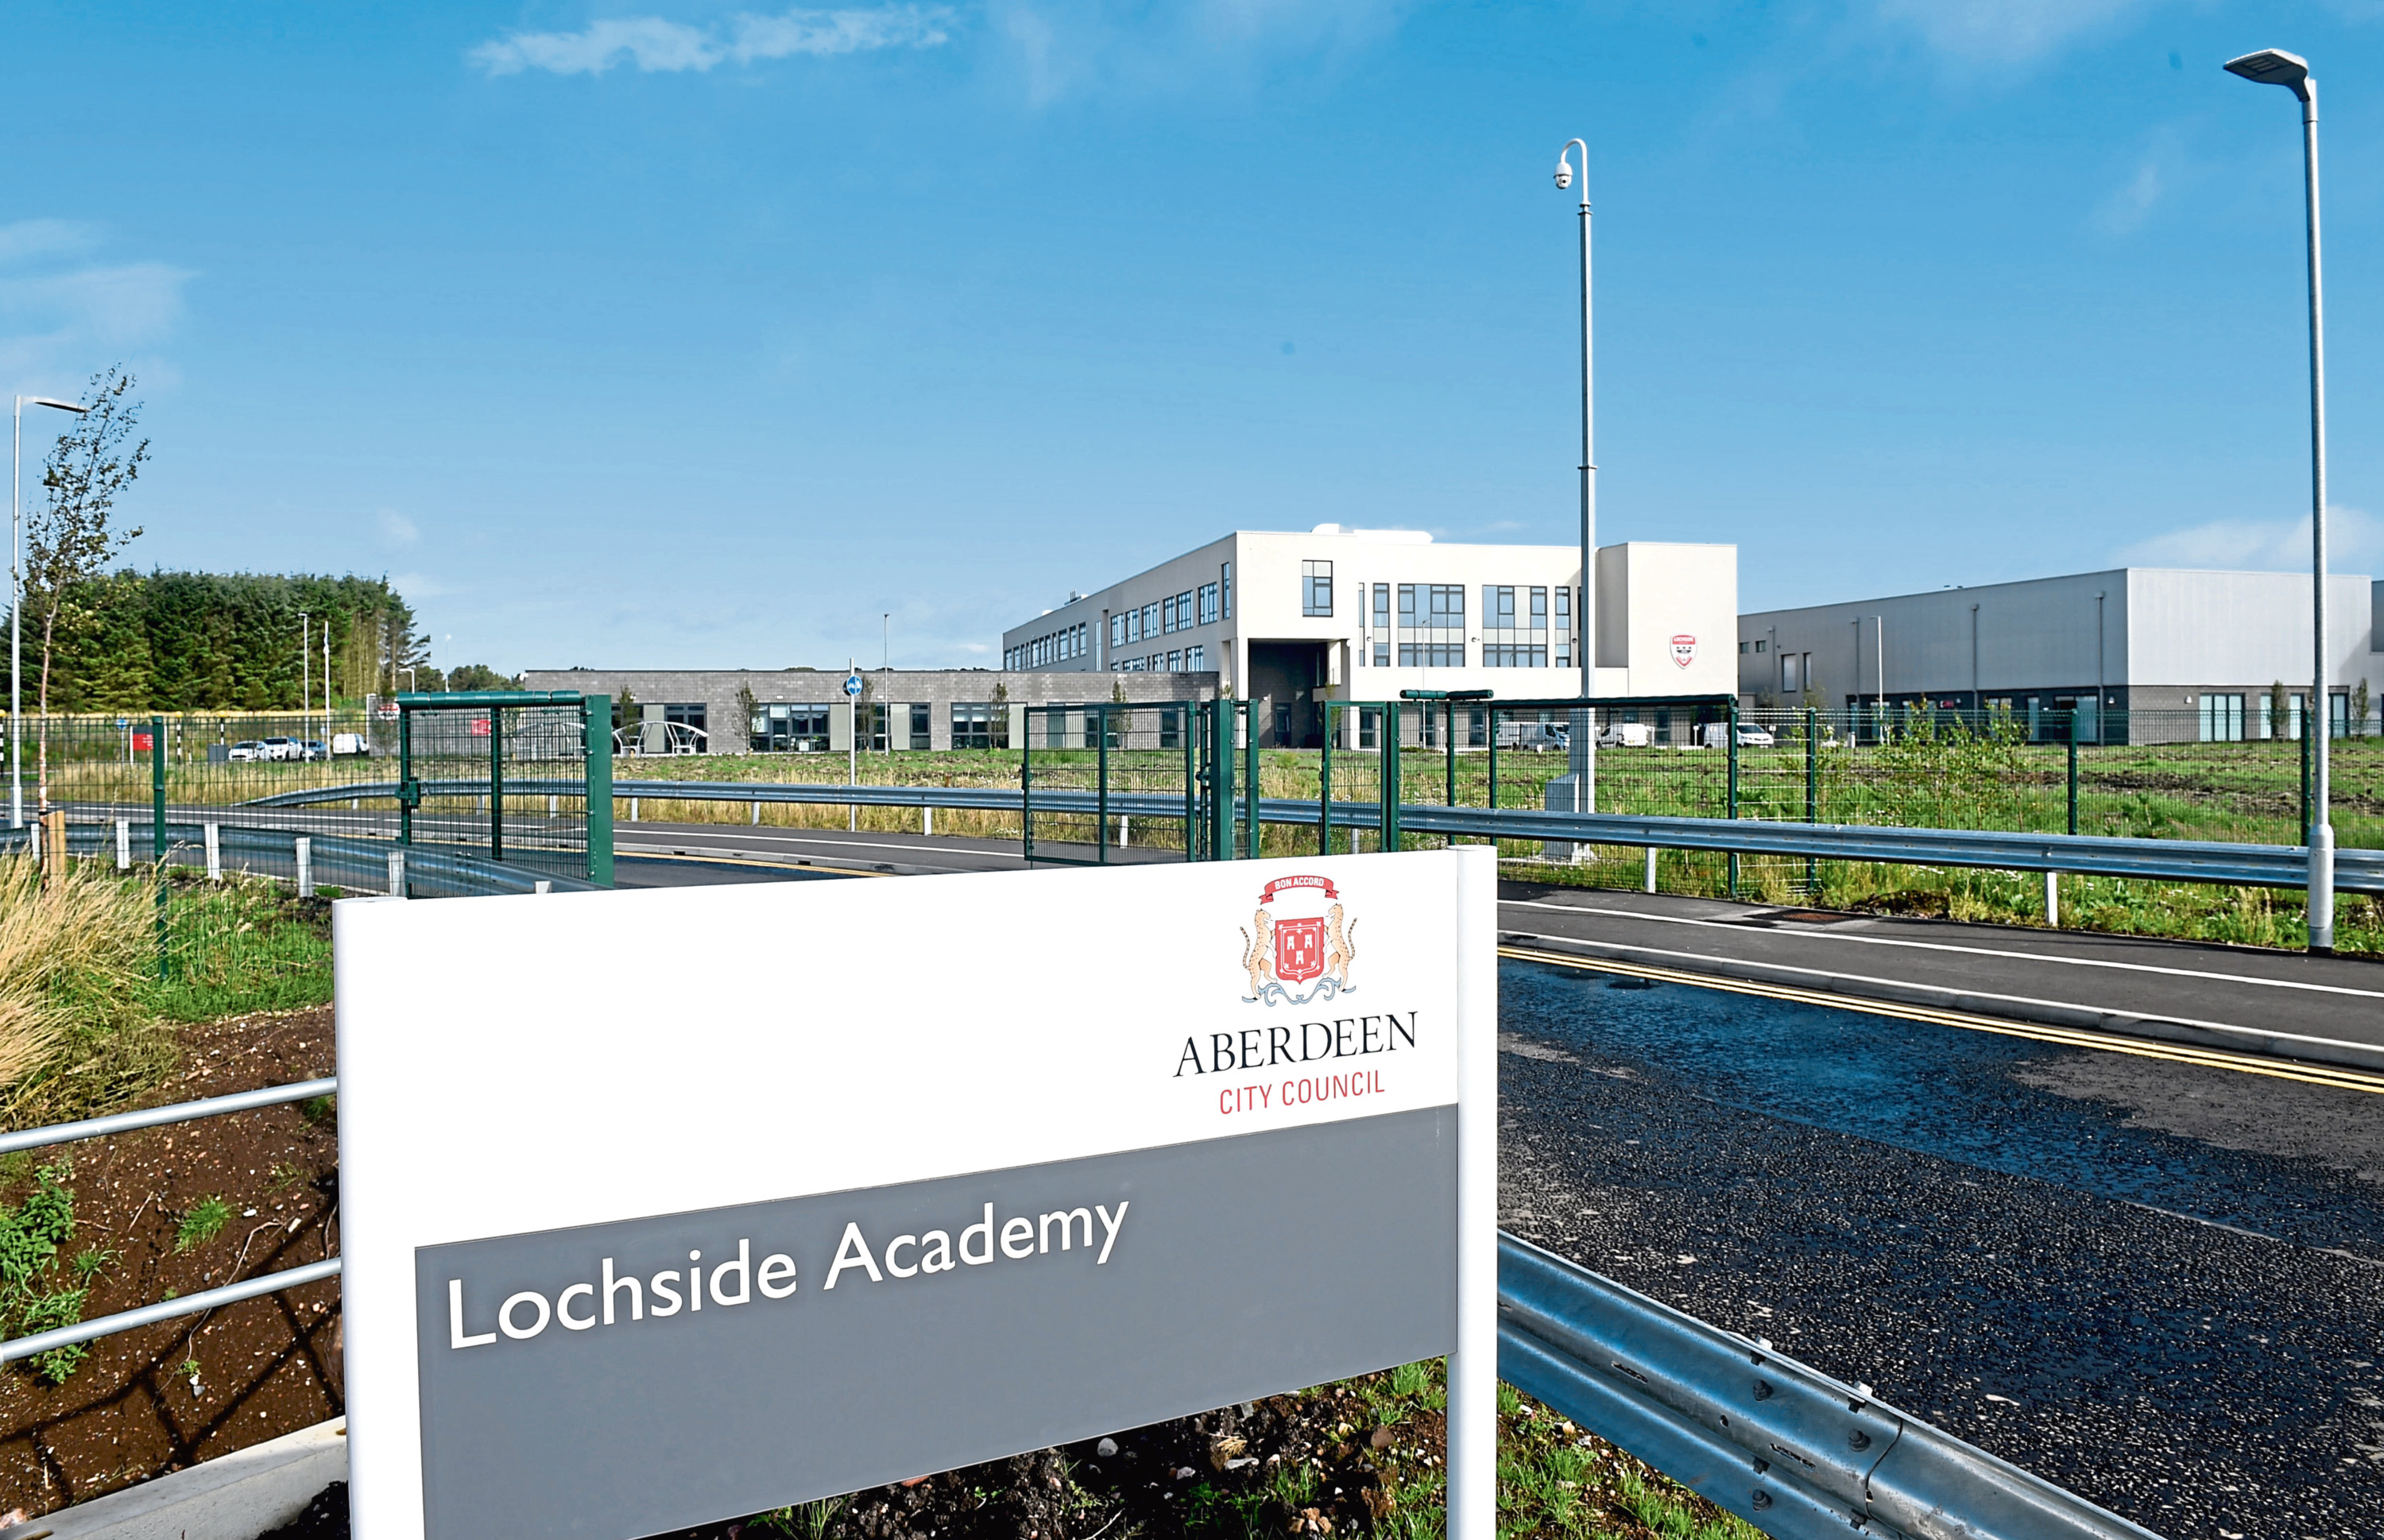 £18,500 was spent on Lochside Academy which opened a year ago